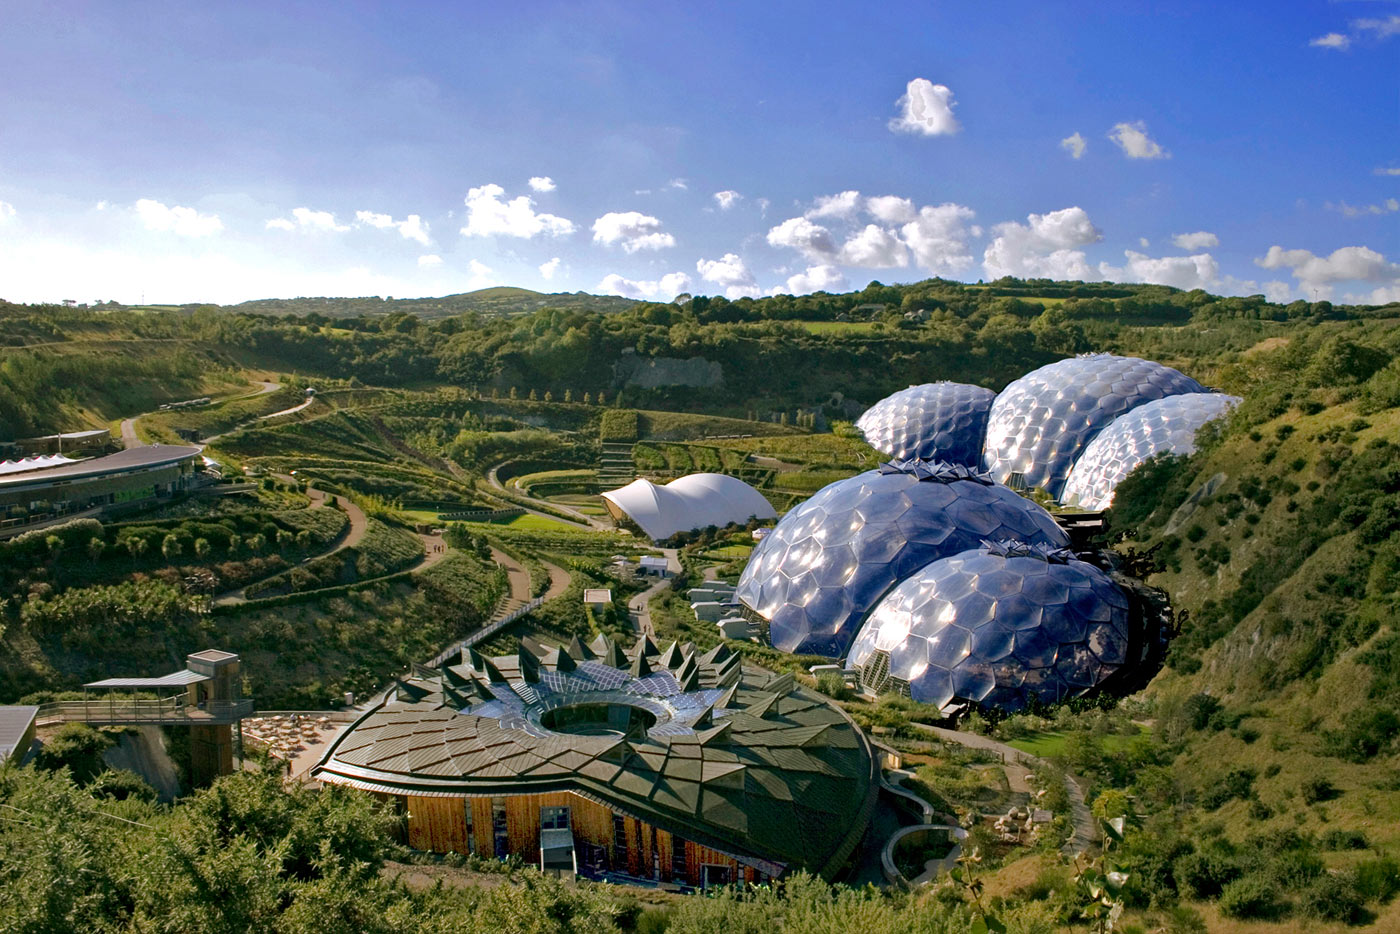 eden project accommodation cornwall